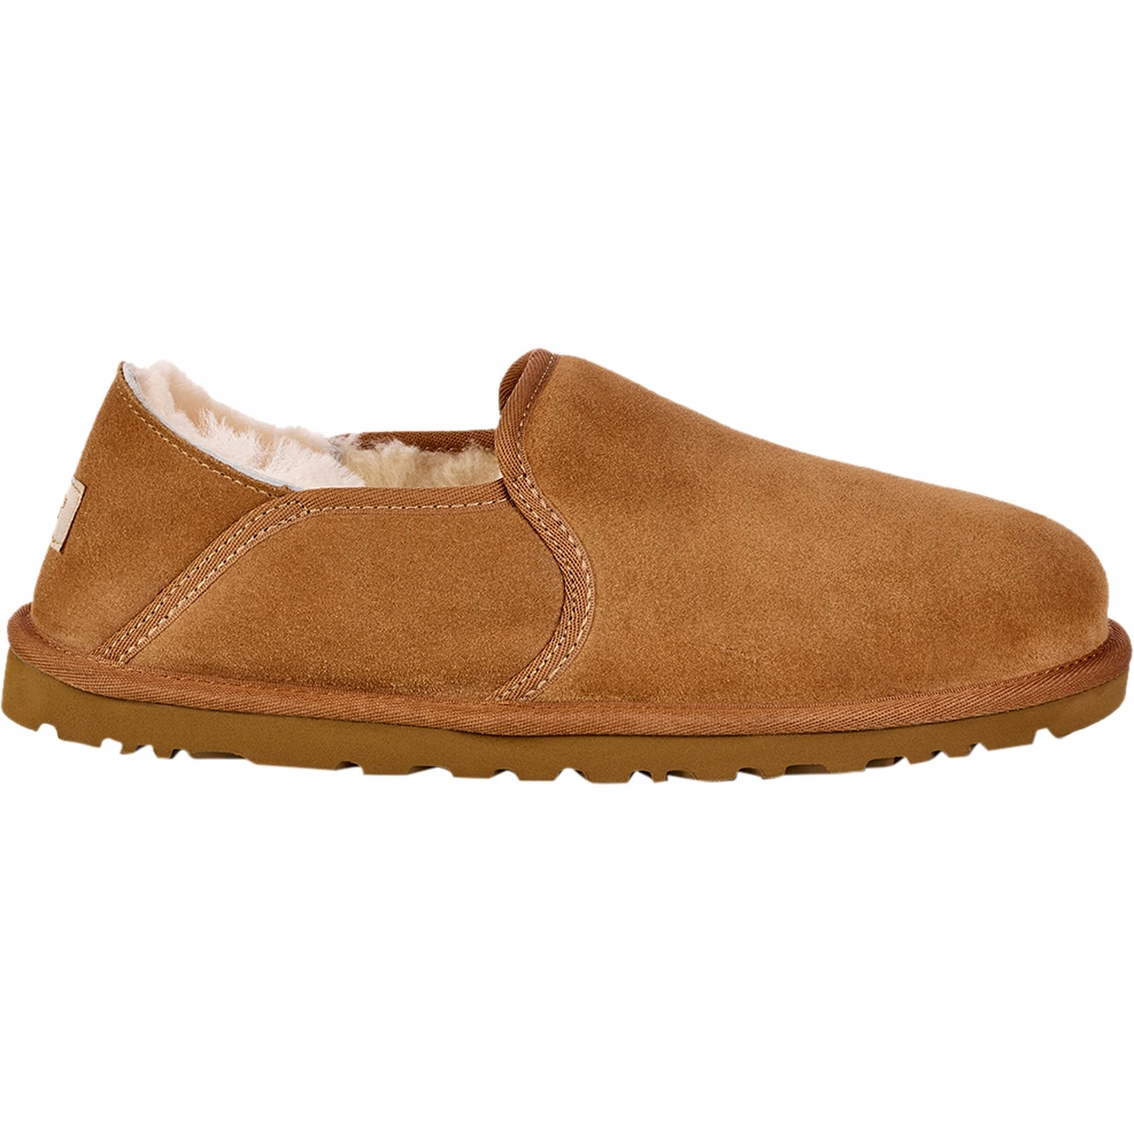 528160ceb01 Ugg Kenton Slippers | Slippers | Shoes | Shop The Exchange